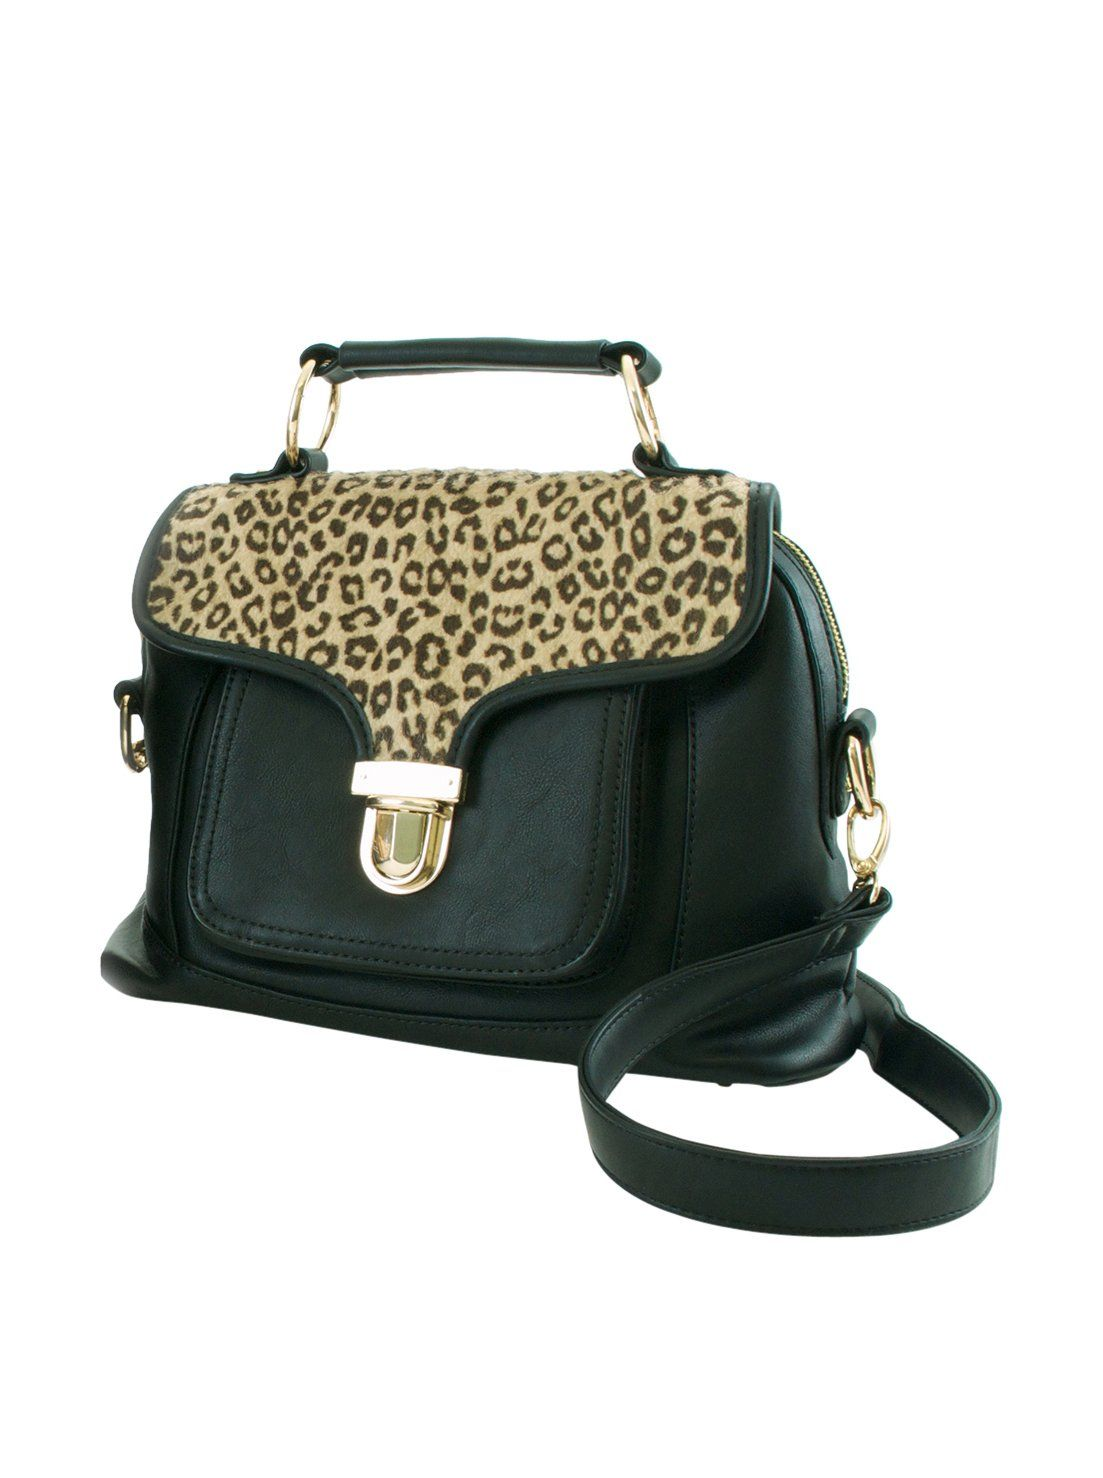 Adrienne Landau Cheetah Print Front Pocket Satchel (Black). Faux cheetah fur. Soft synthetic leather. Top flap with push lock. Main zip compartment. Large front pocket.